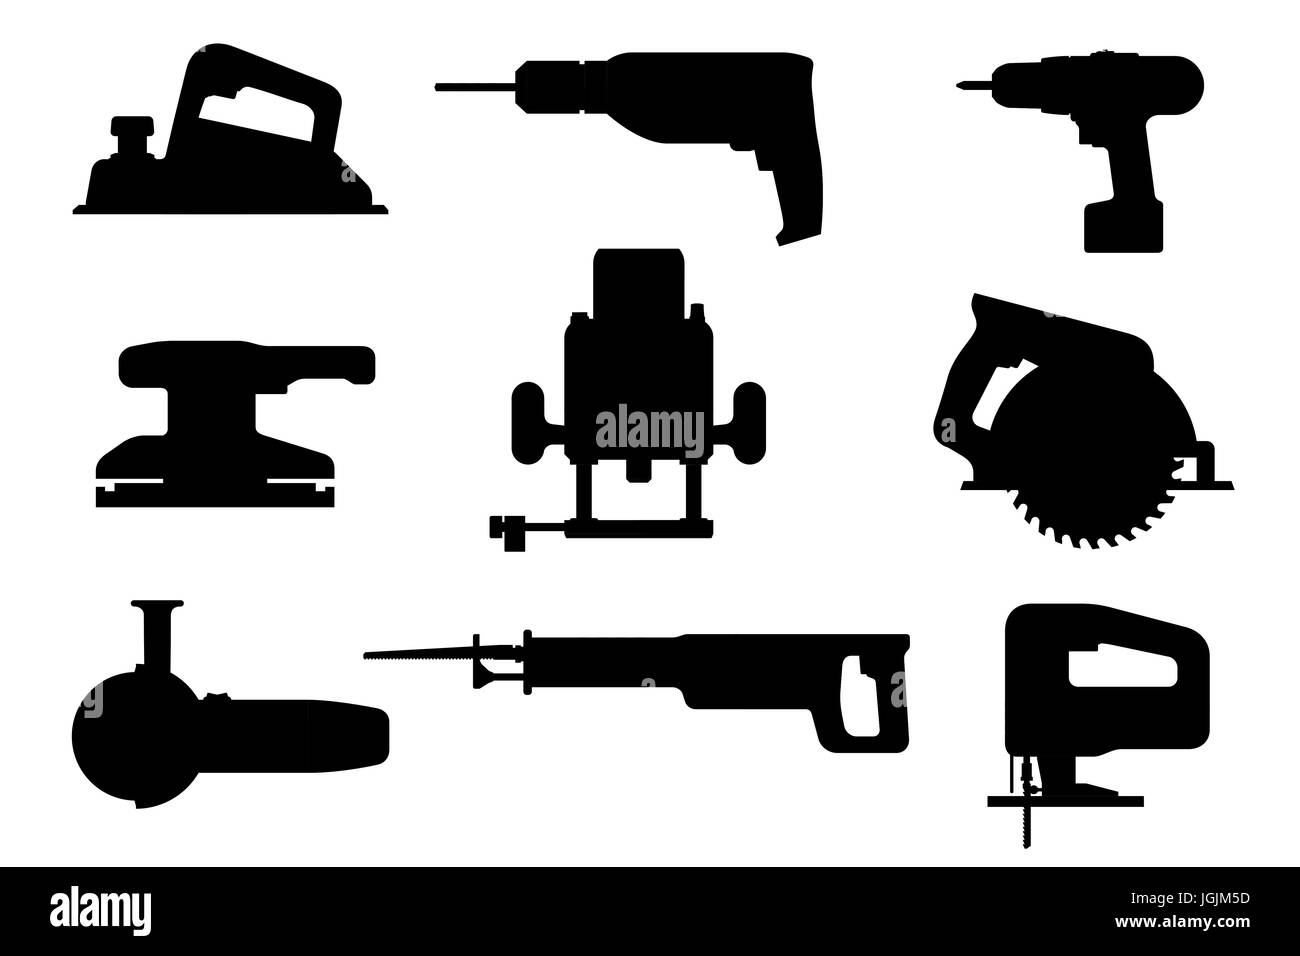 Electric tools black silhouettes - Stock Vector